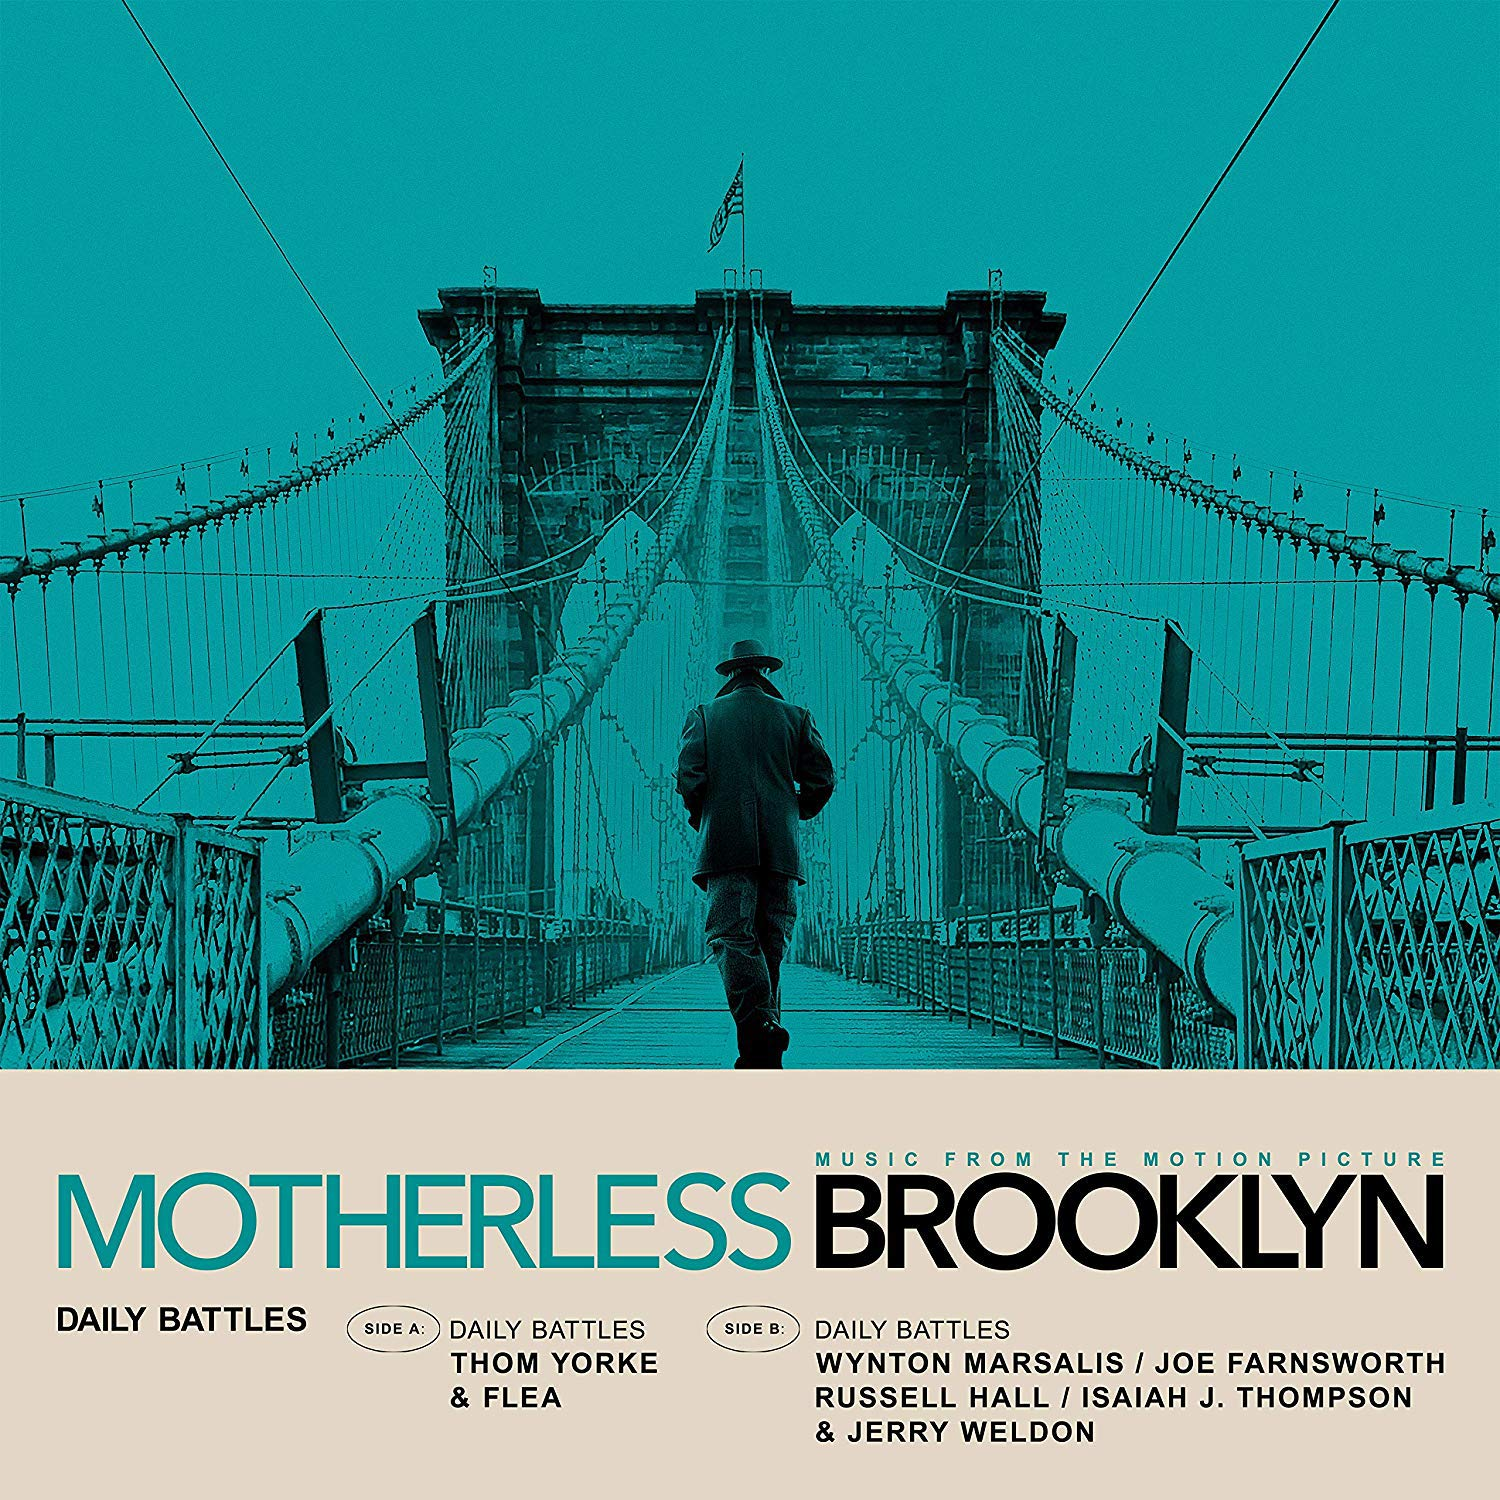 Daily battles - From Motherless Brooklyn (2019) (vinile)